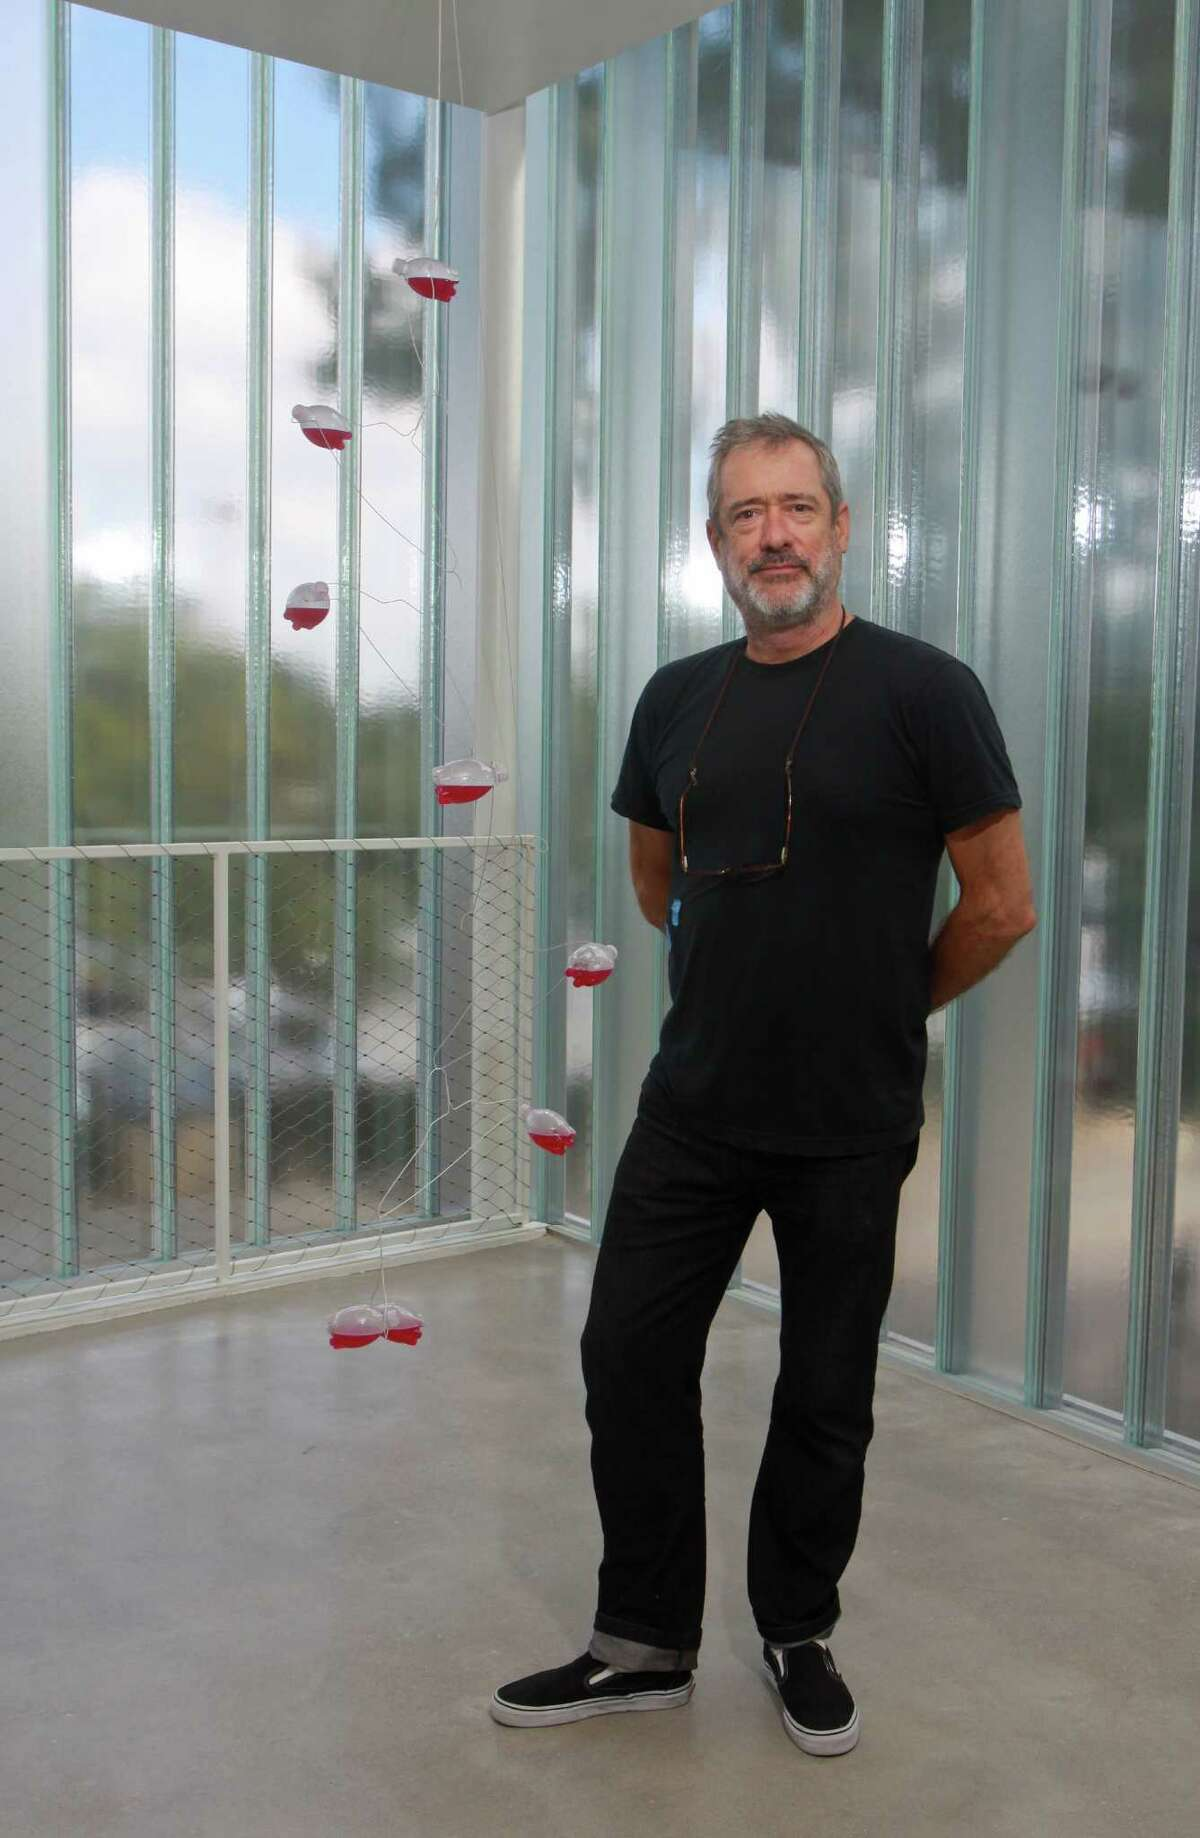 """Artist Tony Feher took wire hangers, plastic bottles with plastic caps, ink, water and twine to create his 2007 mobile """"(Pinks)."""" It is on exhibit at the Blaffer Gallery at the University of Houston."""